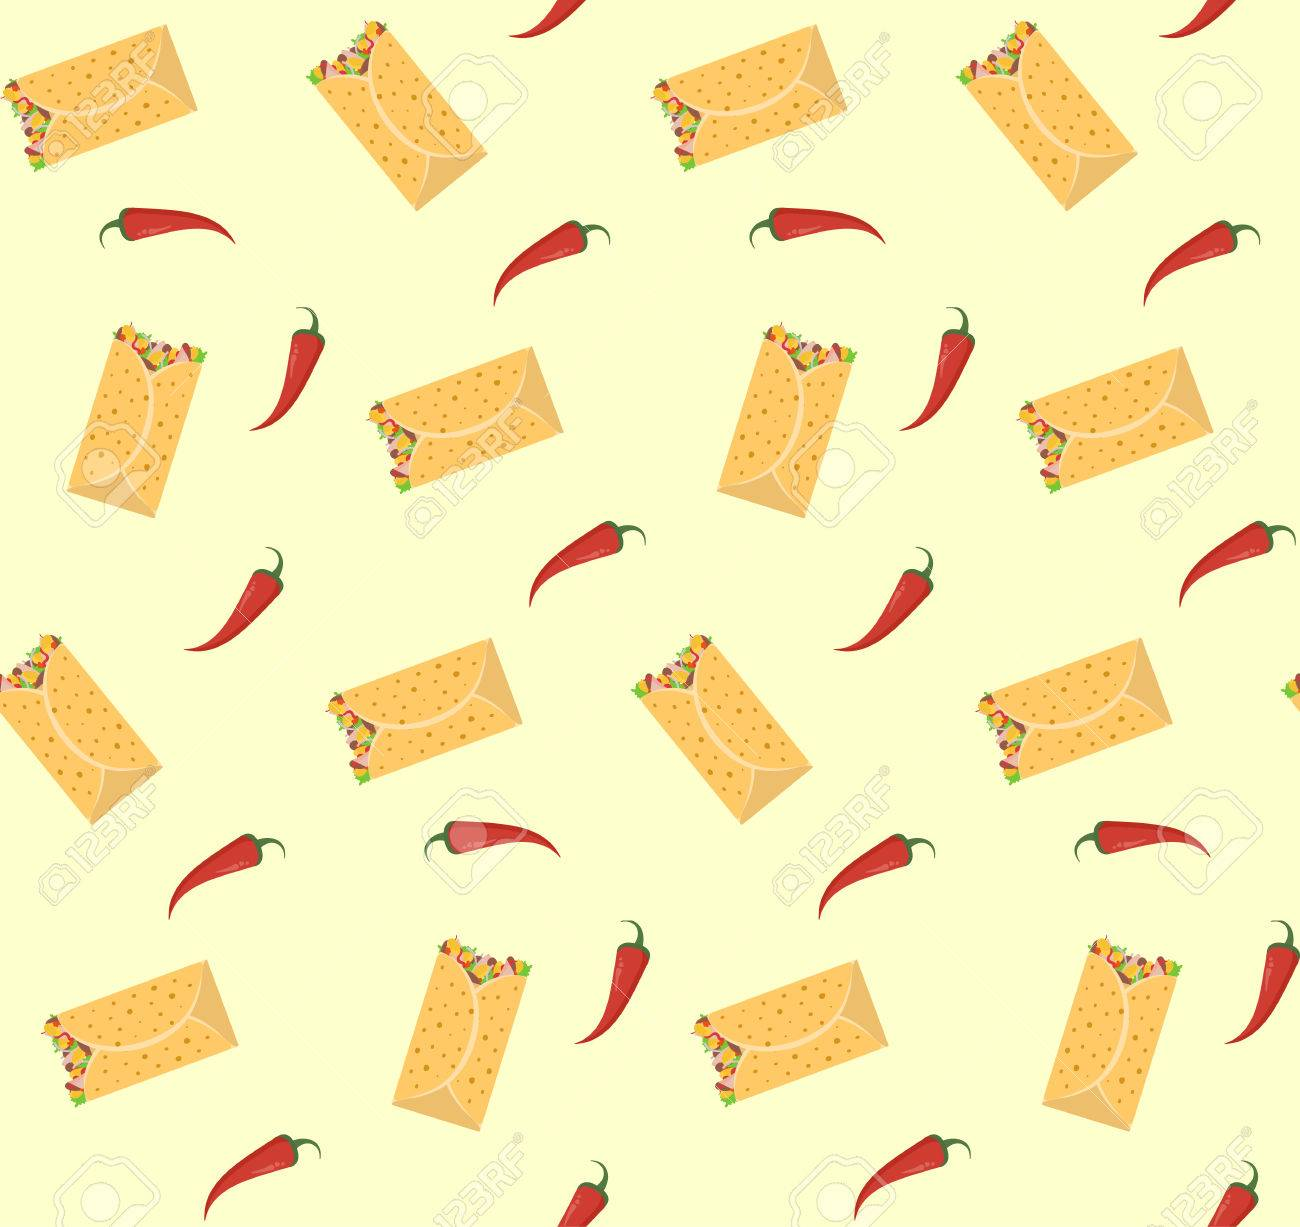 Cute Colorful Burrito And Red Chili Pepper Seamless Pattern